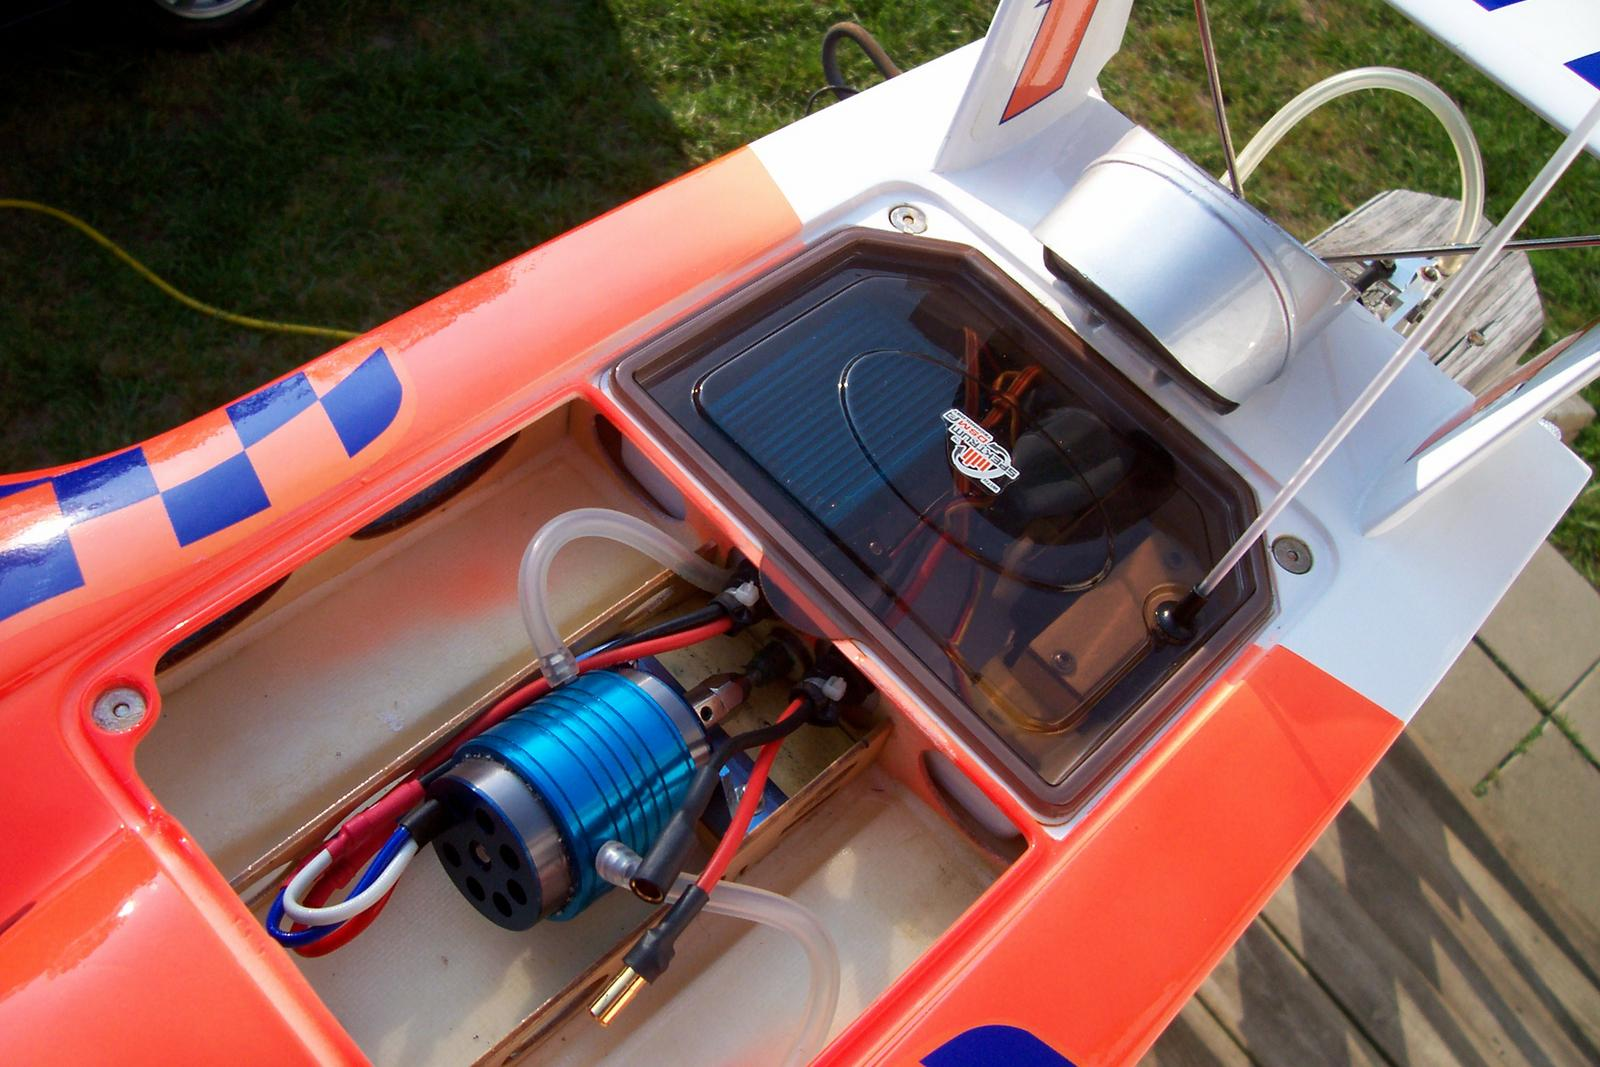 rc boats electric brushless with Attachment on Fms Rc Plane F18 Hor  64mm Electric Ducted Fan Rtf Jet 2 4ghz Radio System Blue No Battery also 1879202504 as well Attachment also FMS800mmMesserschmittBF109V24CHBrushless24GHzRTFRCAirplane in addition Showthread.